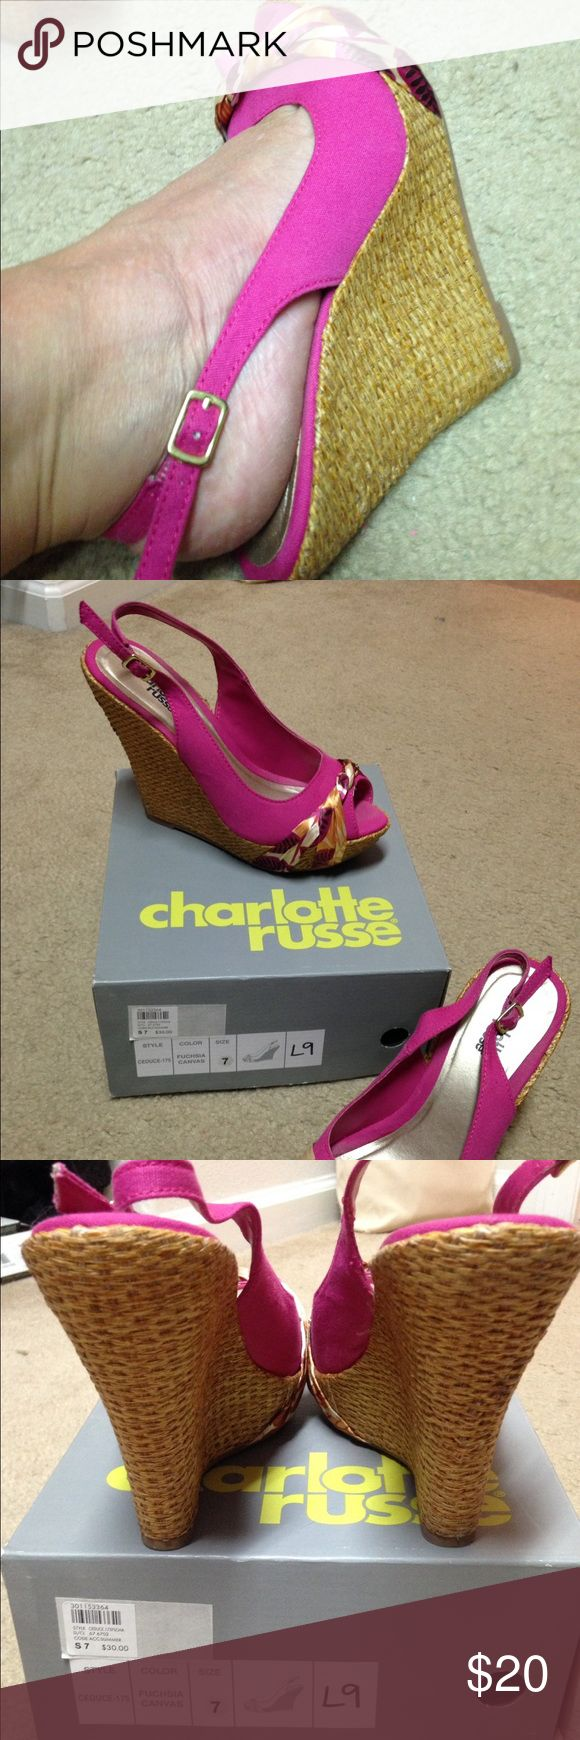 Charlotte Russe Heels In near perfect condition, no defects. Size 7. Worn twice. Cloth material w/ silk decor. Light weight and easy to wear. Make me an offer! Charlotte Russe Shoes Heels